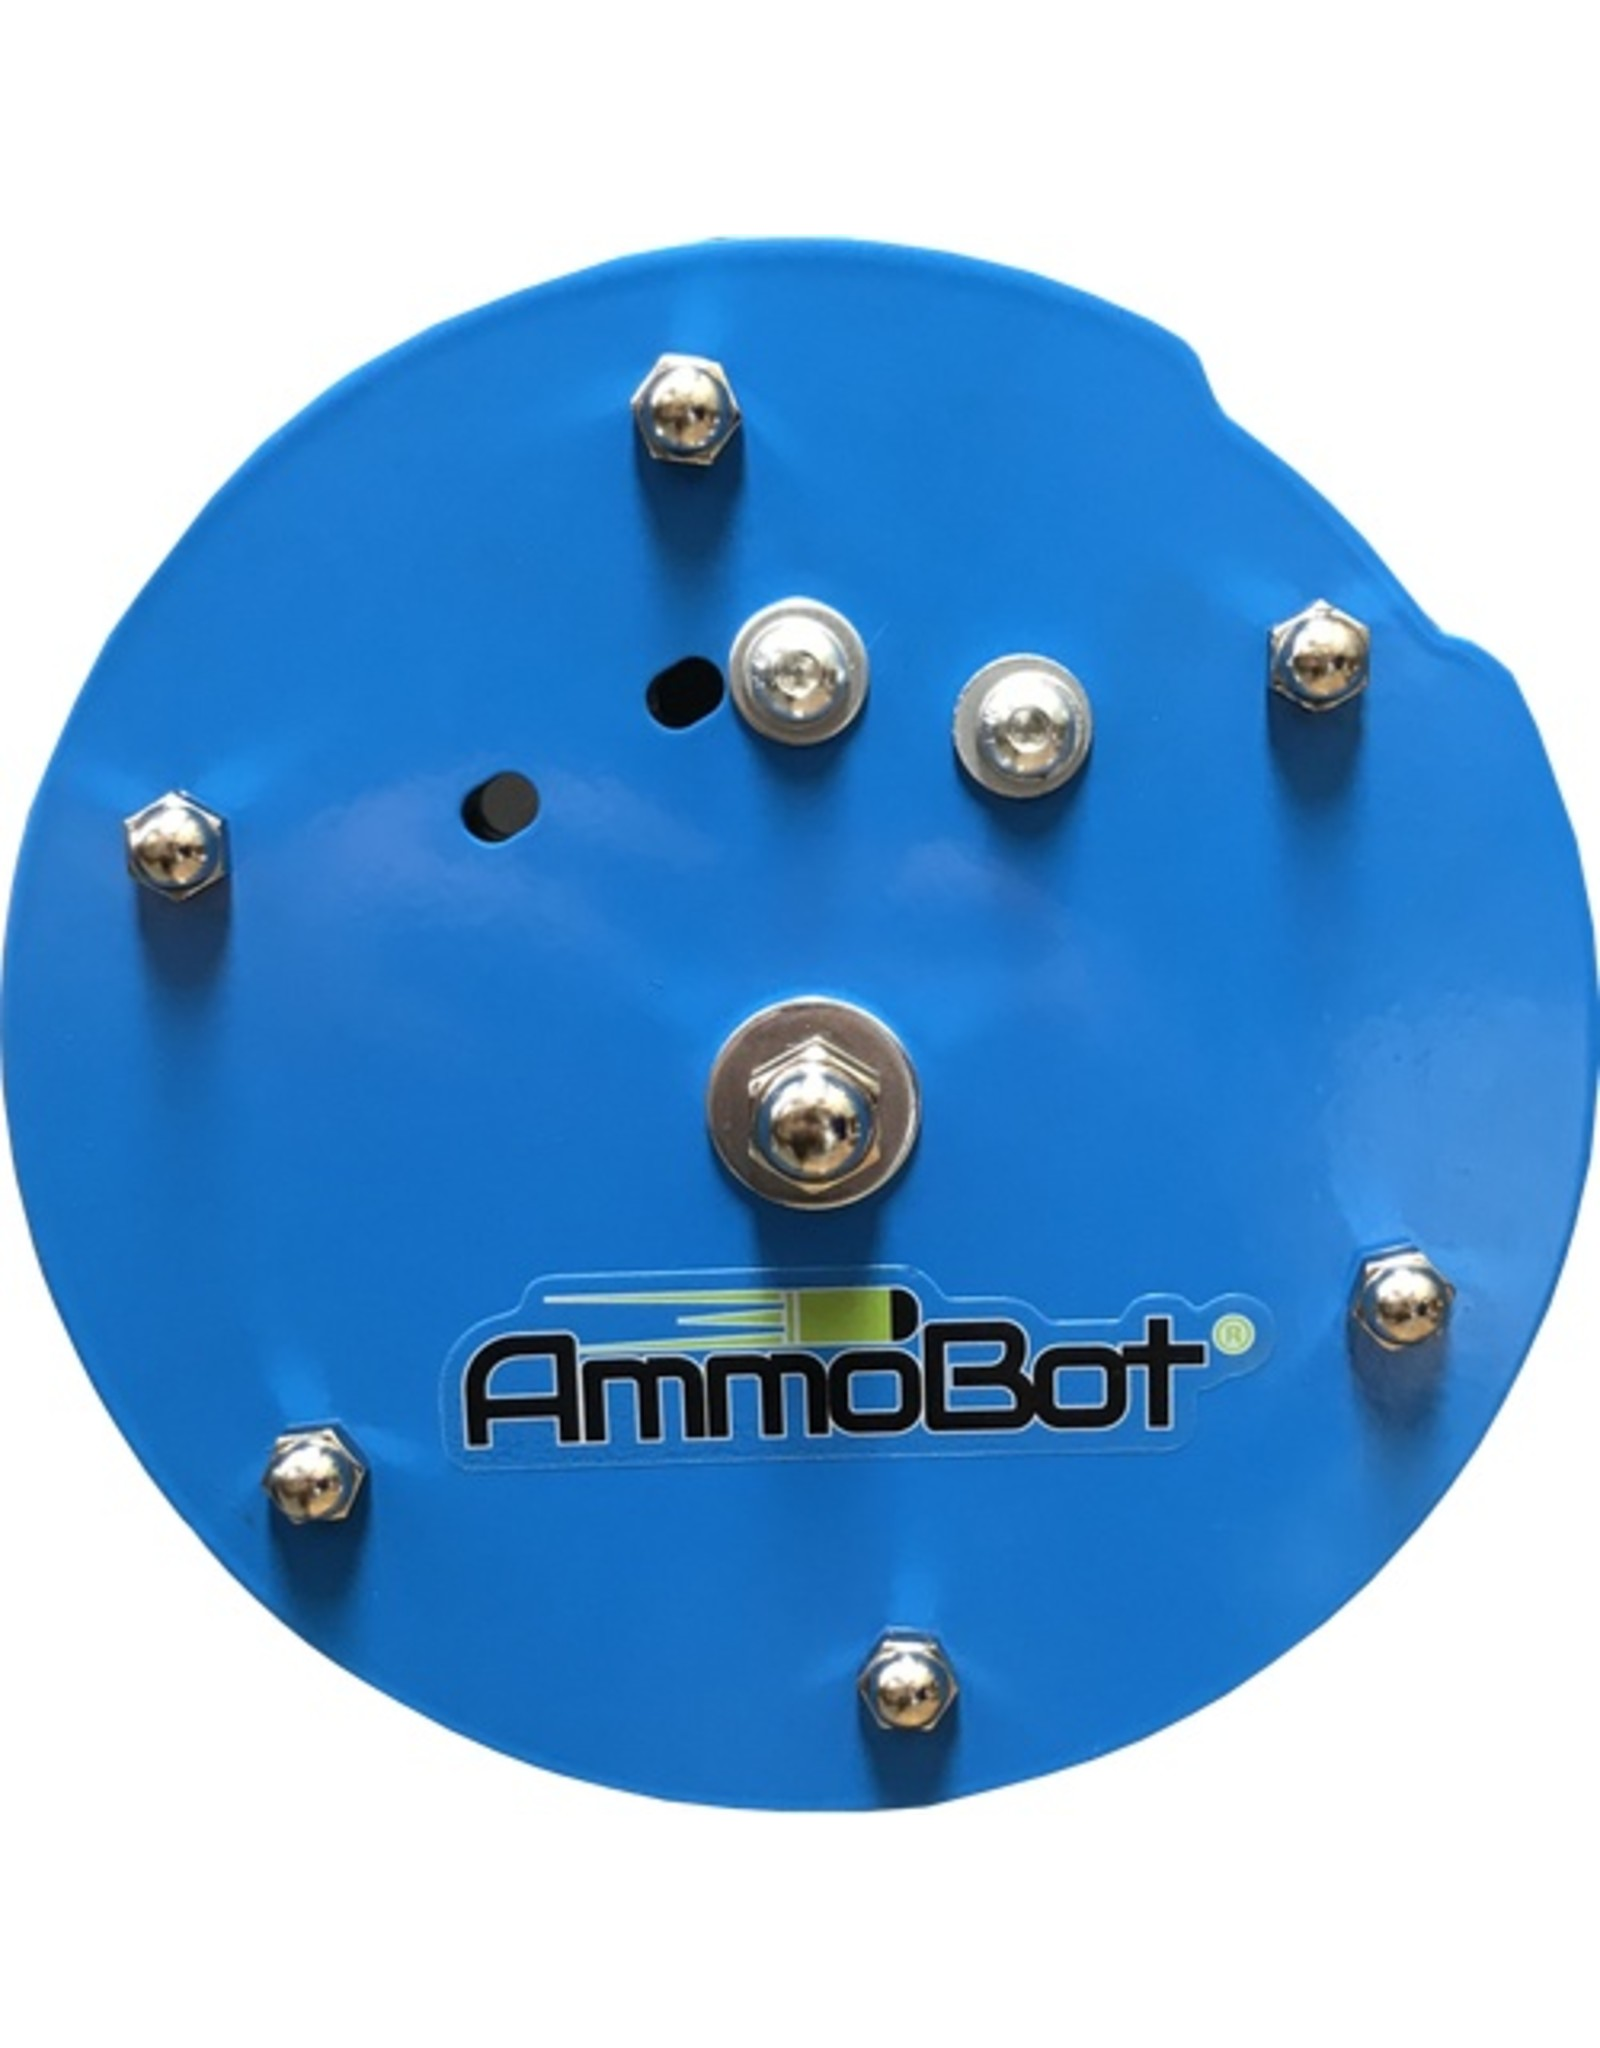 AmmoBot AmmoBot Auto Drive Conversion - 1050 to CP/RL